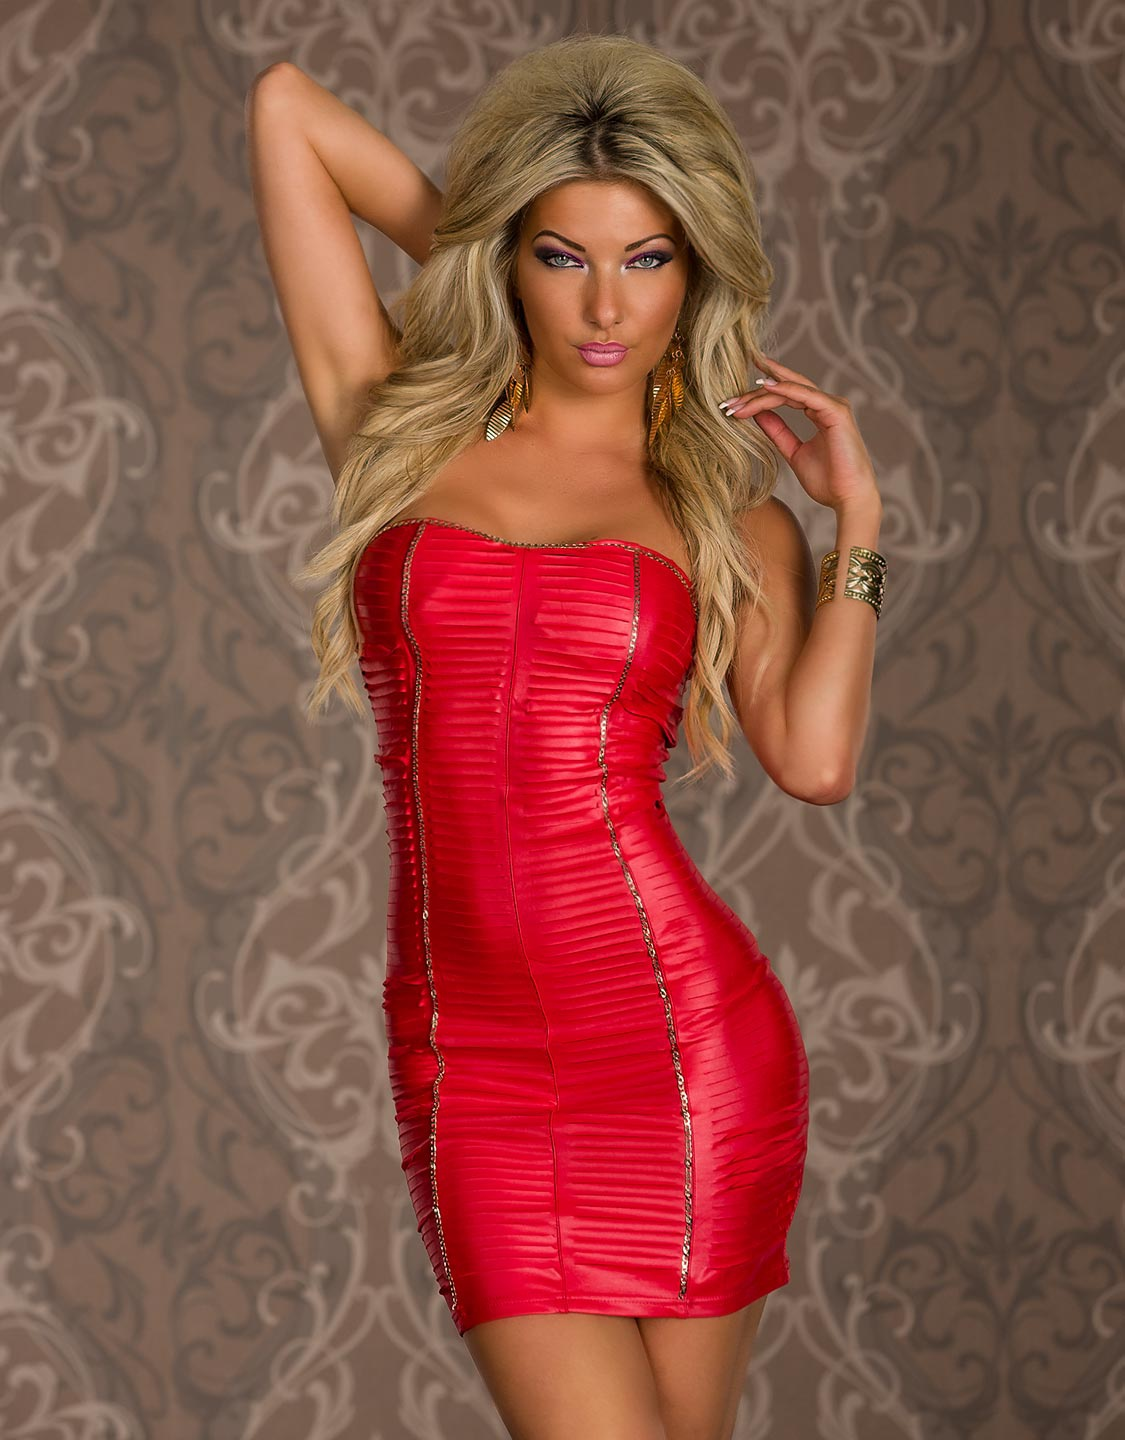 Red Strapless Textured Mini Dress With Gold Stripes